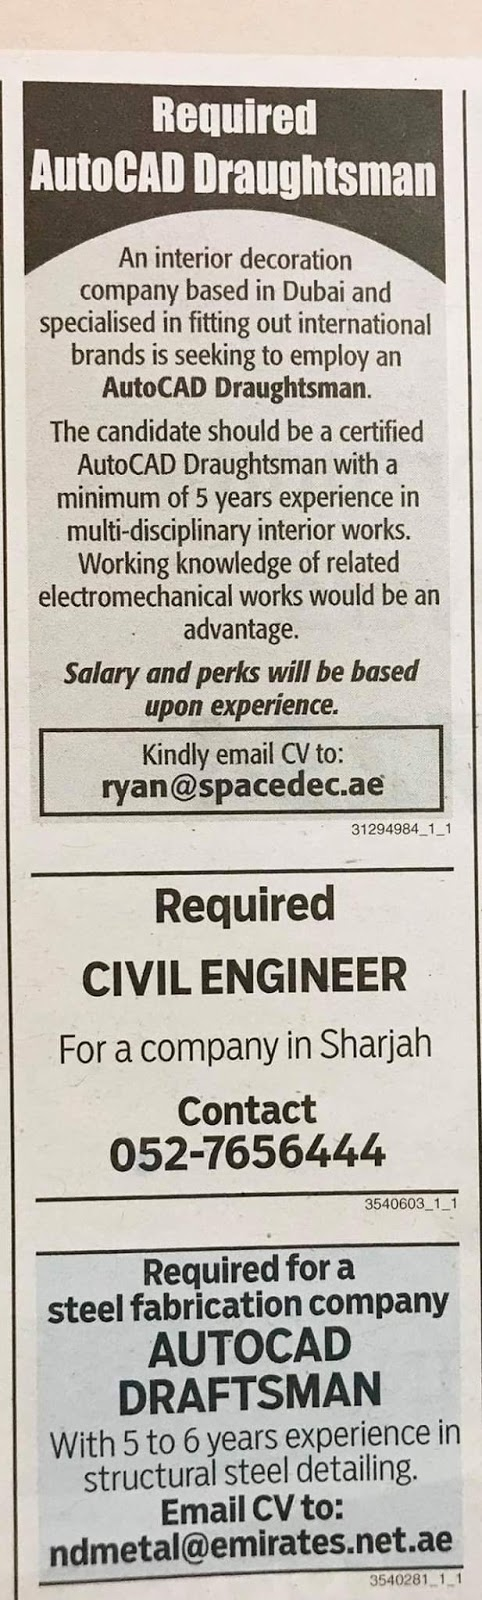 Required Autocad Draftsman  Civil Engineer for UAE JOBS Local